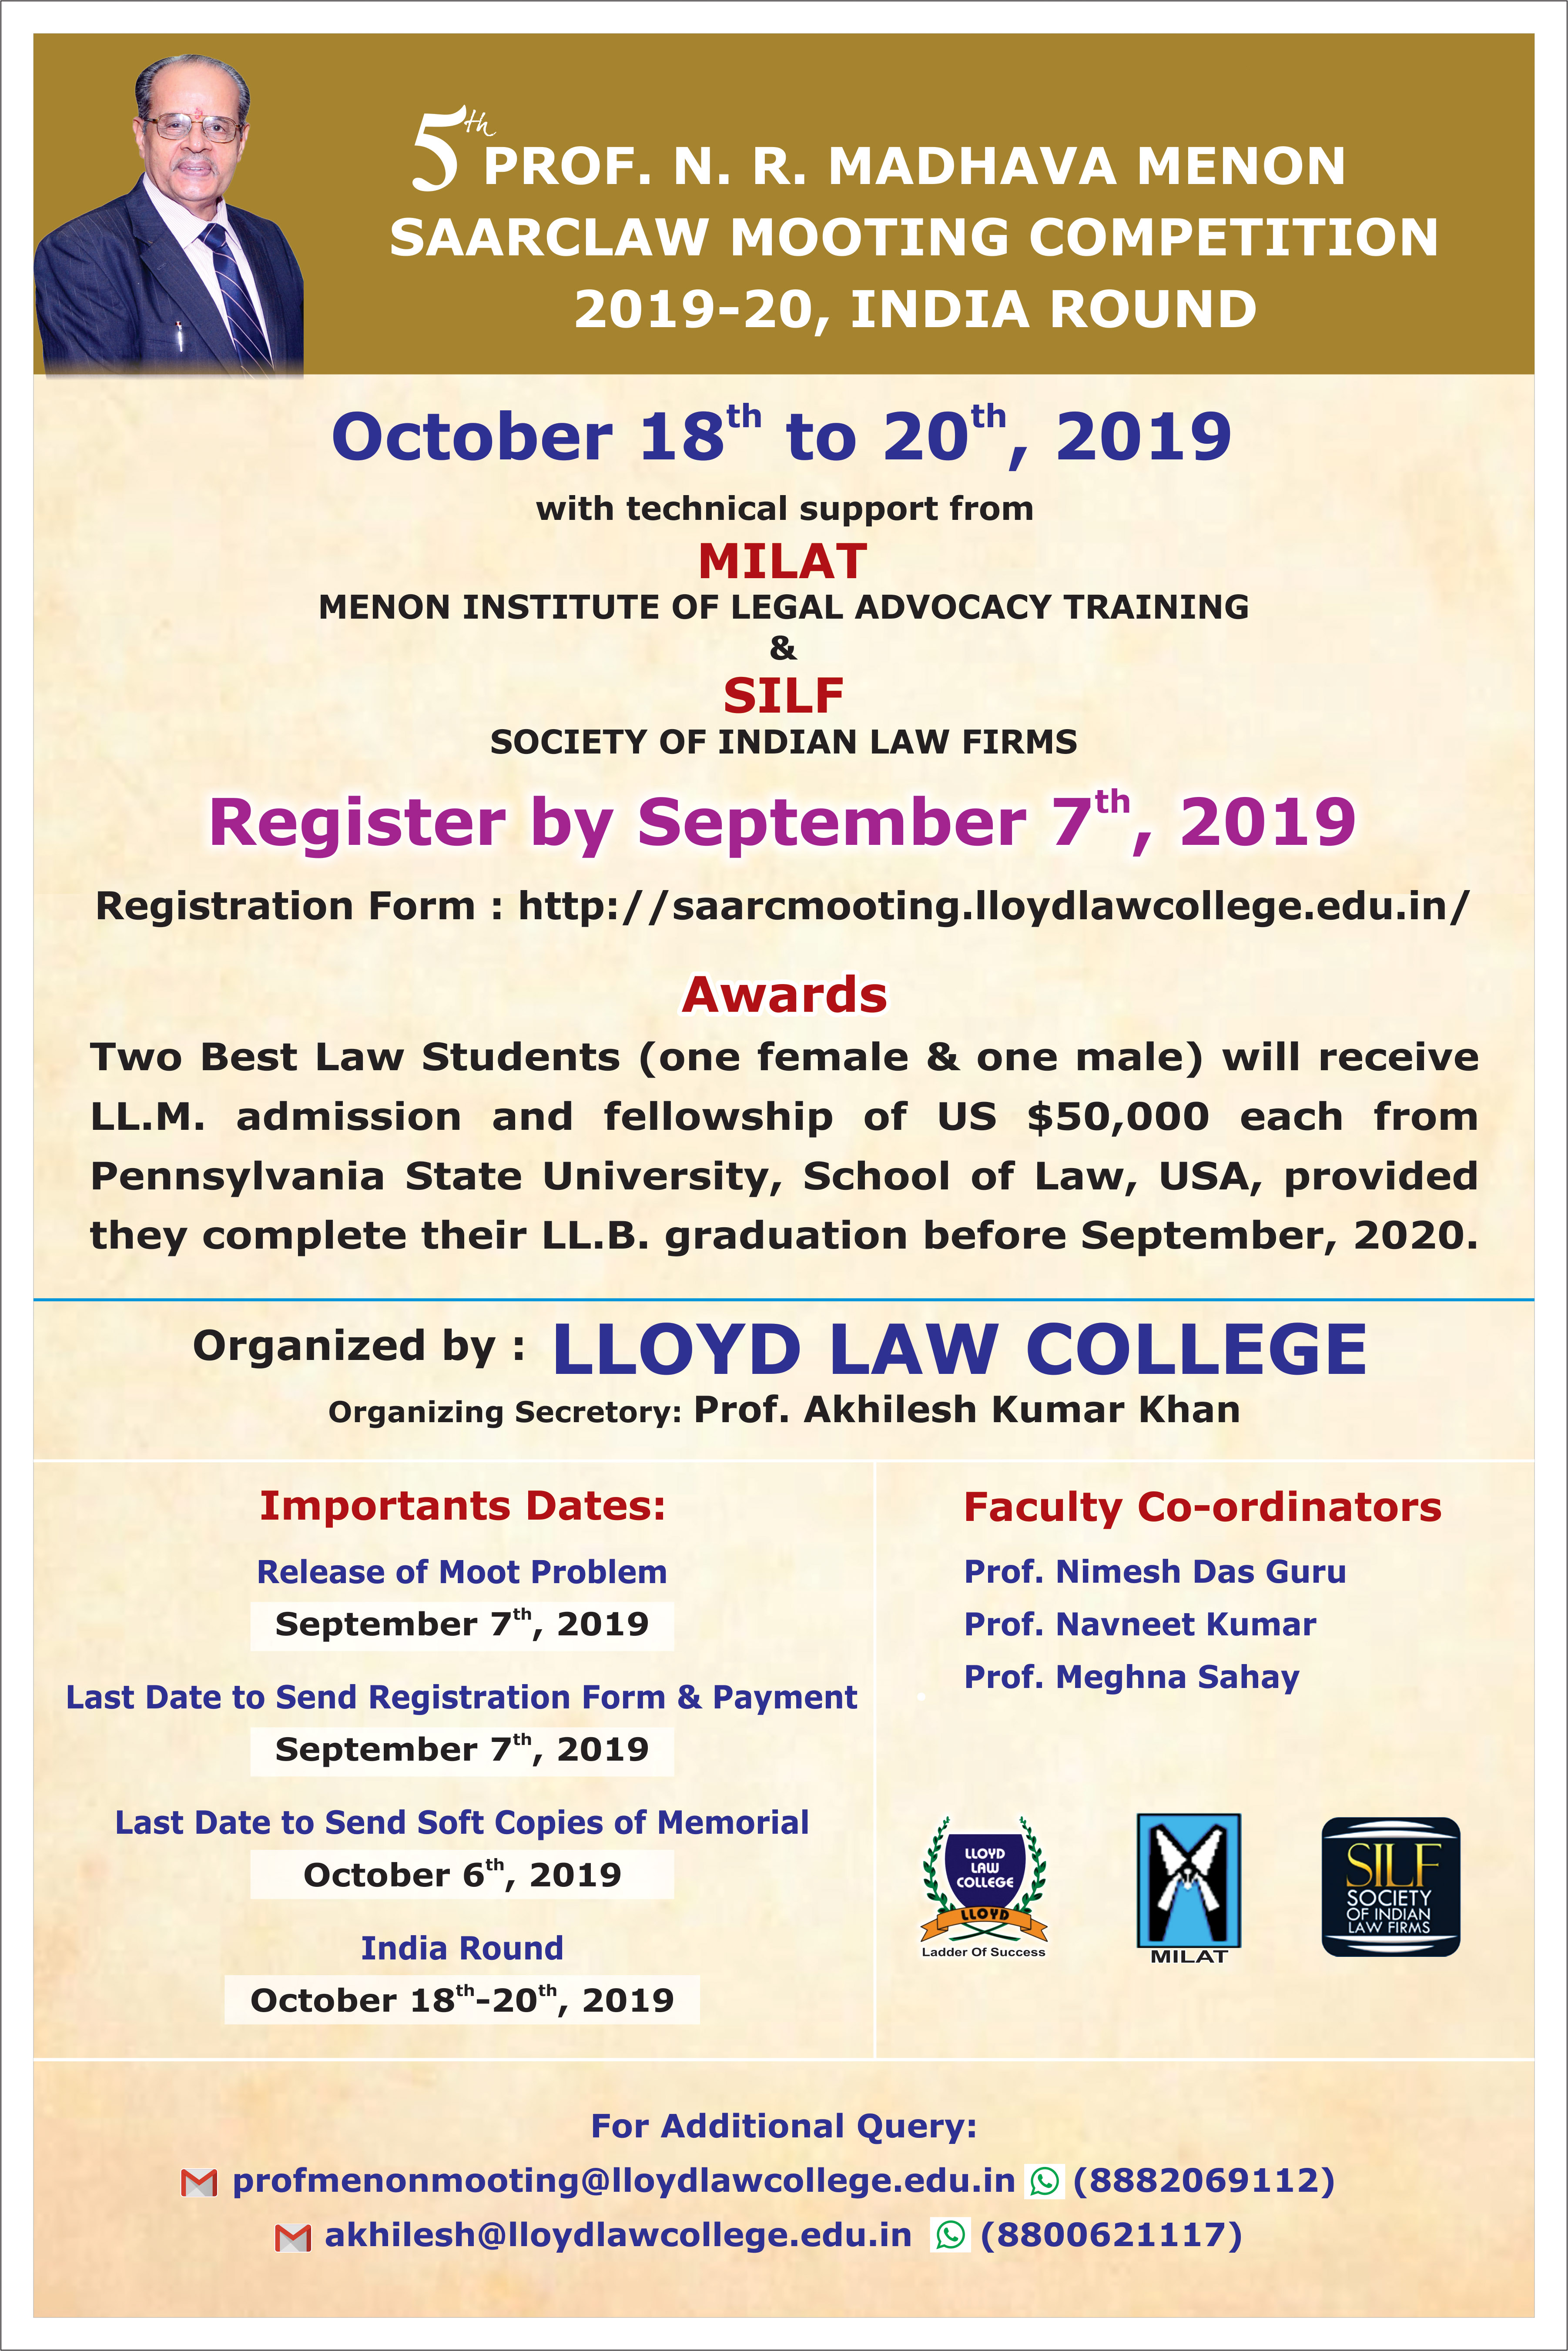 Prof N R Madhava Menon SAARCLAW Mooting Competition